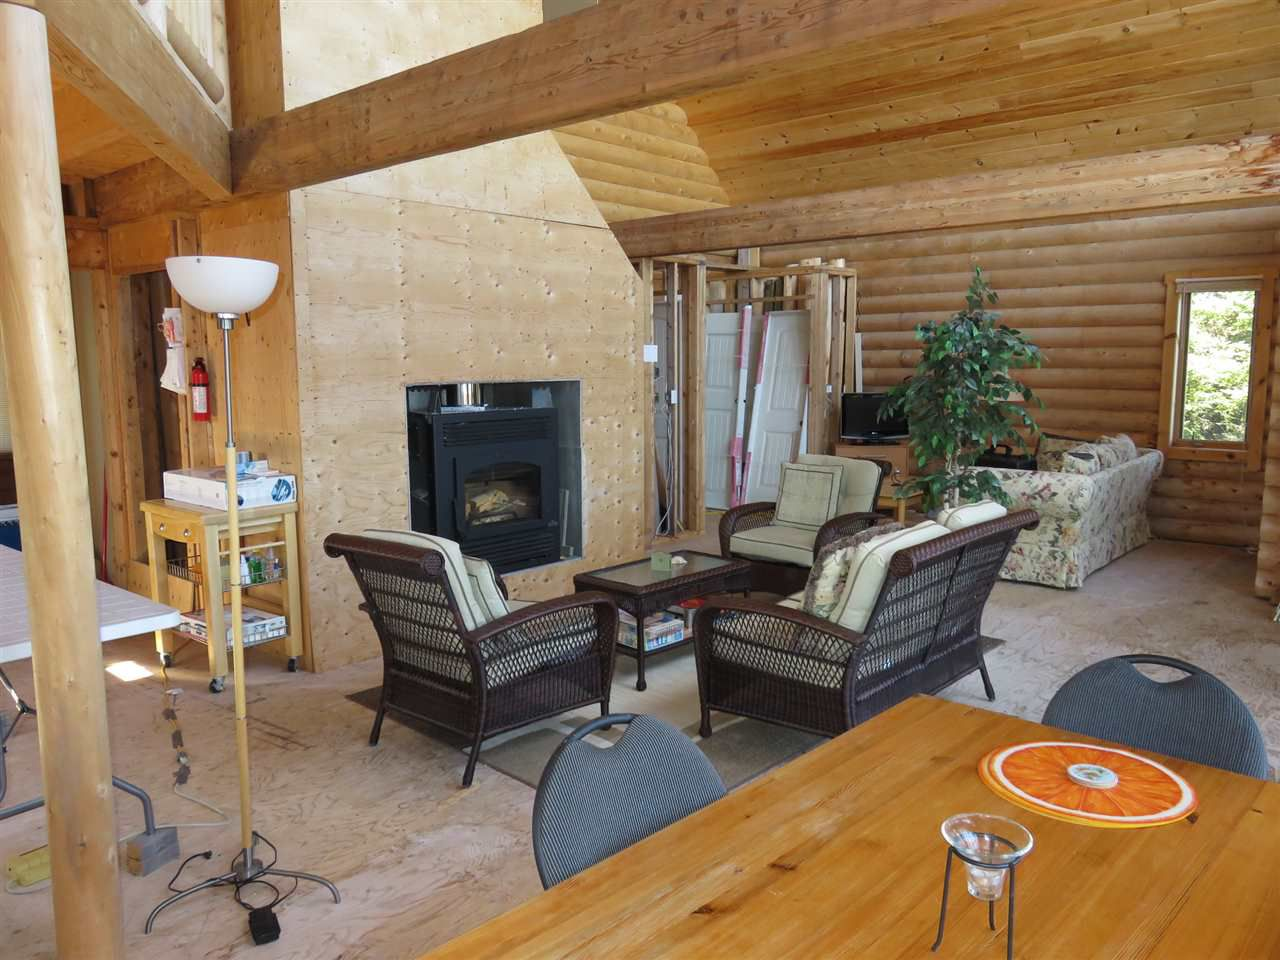 Photo 15: Photos: 198 SEASIDE Drive in Louis Head: 407-Shelburne County Residential for sale (South Shore)  : MLS®# 4686576